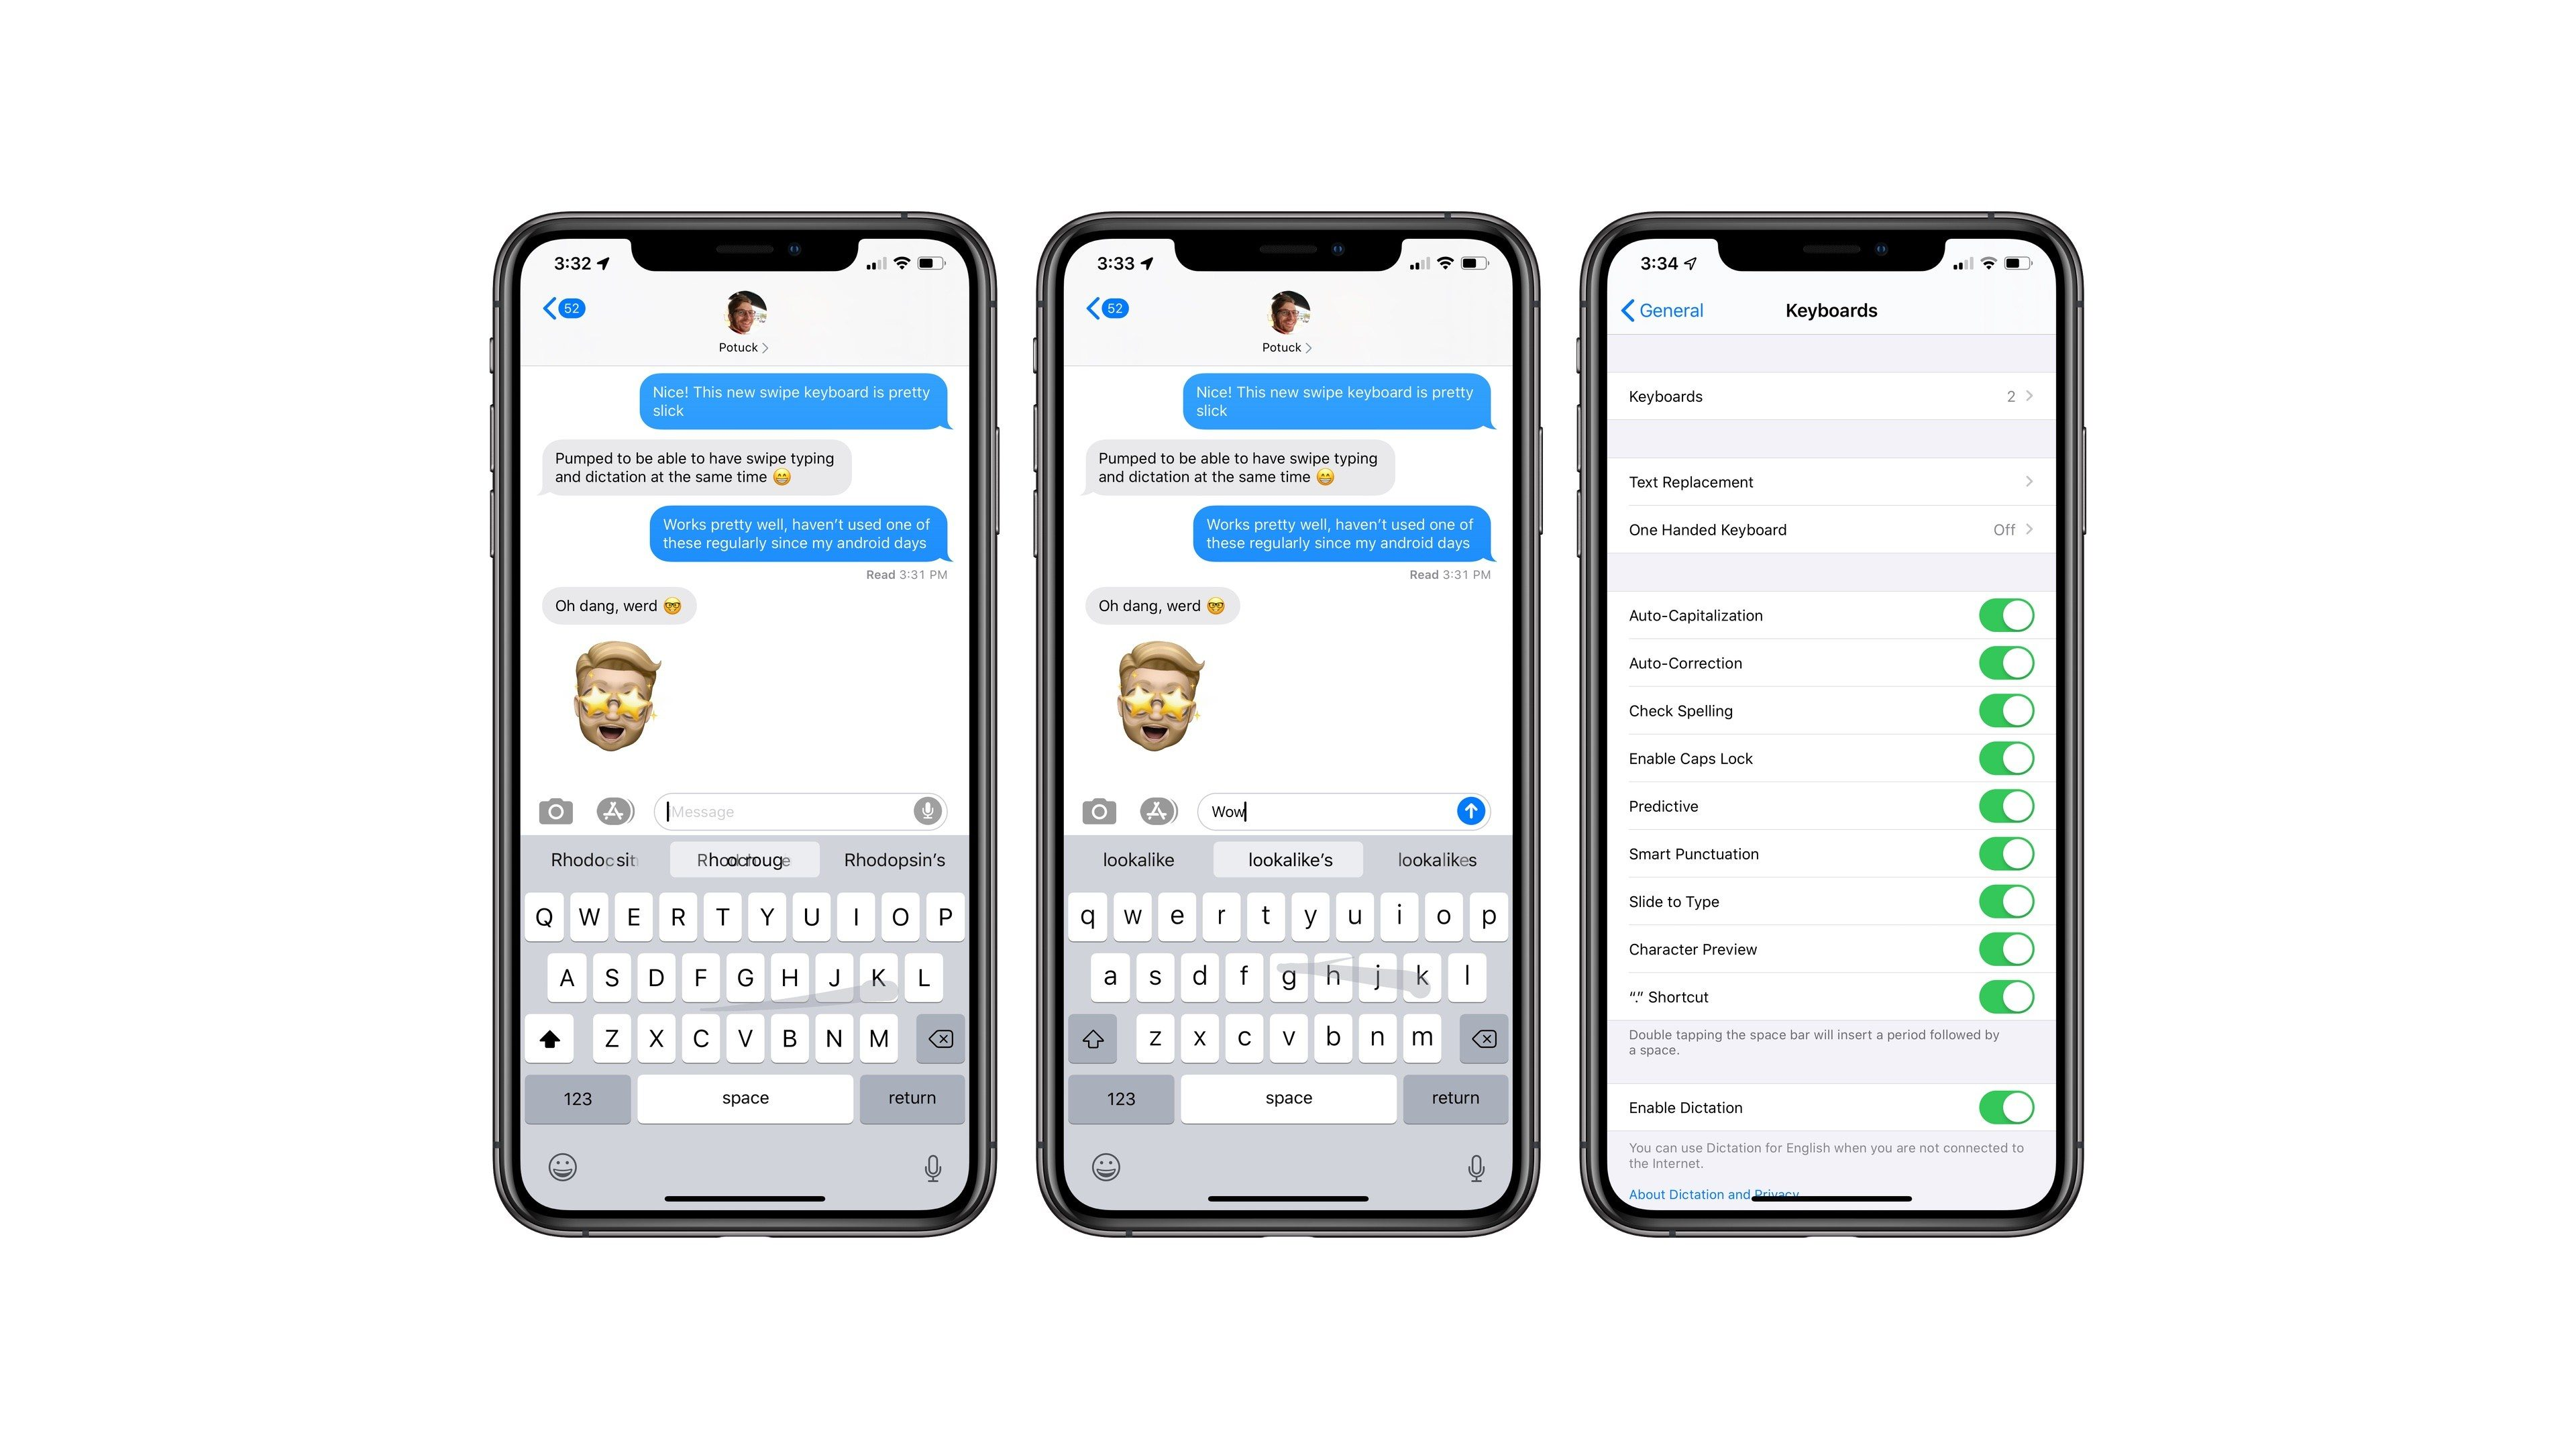 The Swipe Keyboard in iOS 13 Is a Useful New Addition